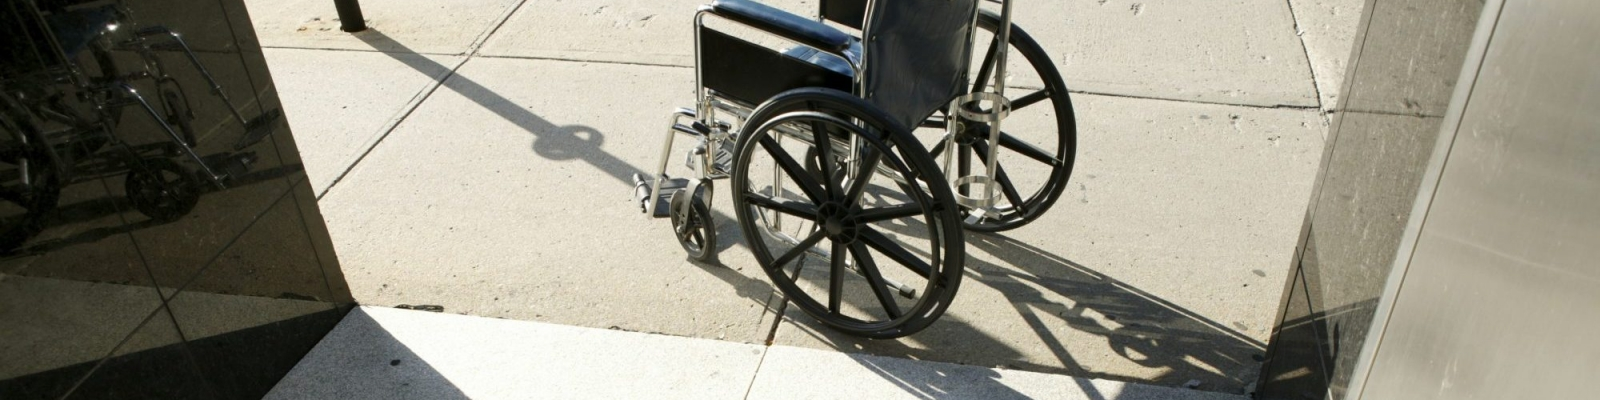 wheelchair on sidewalk